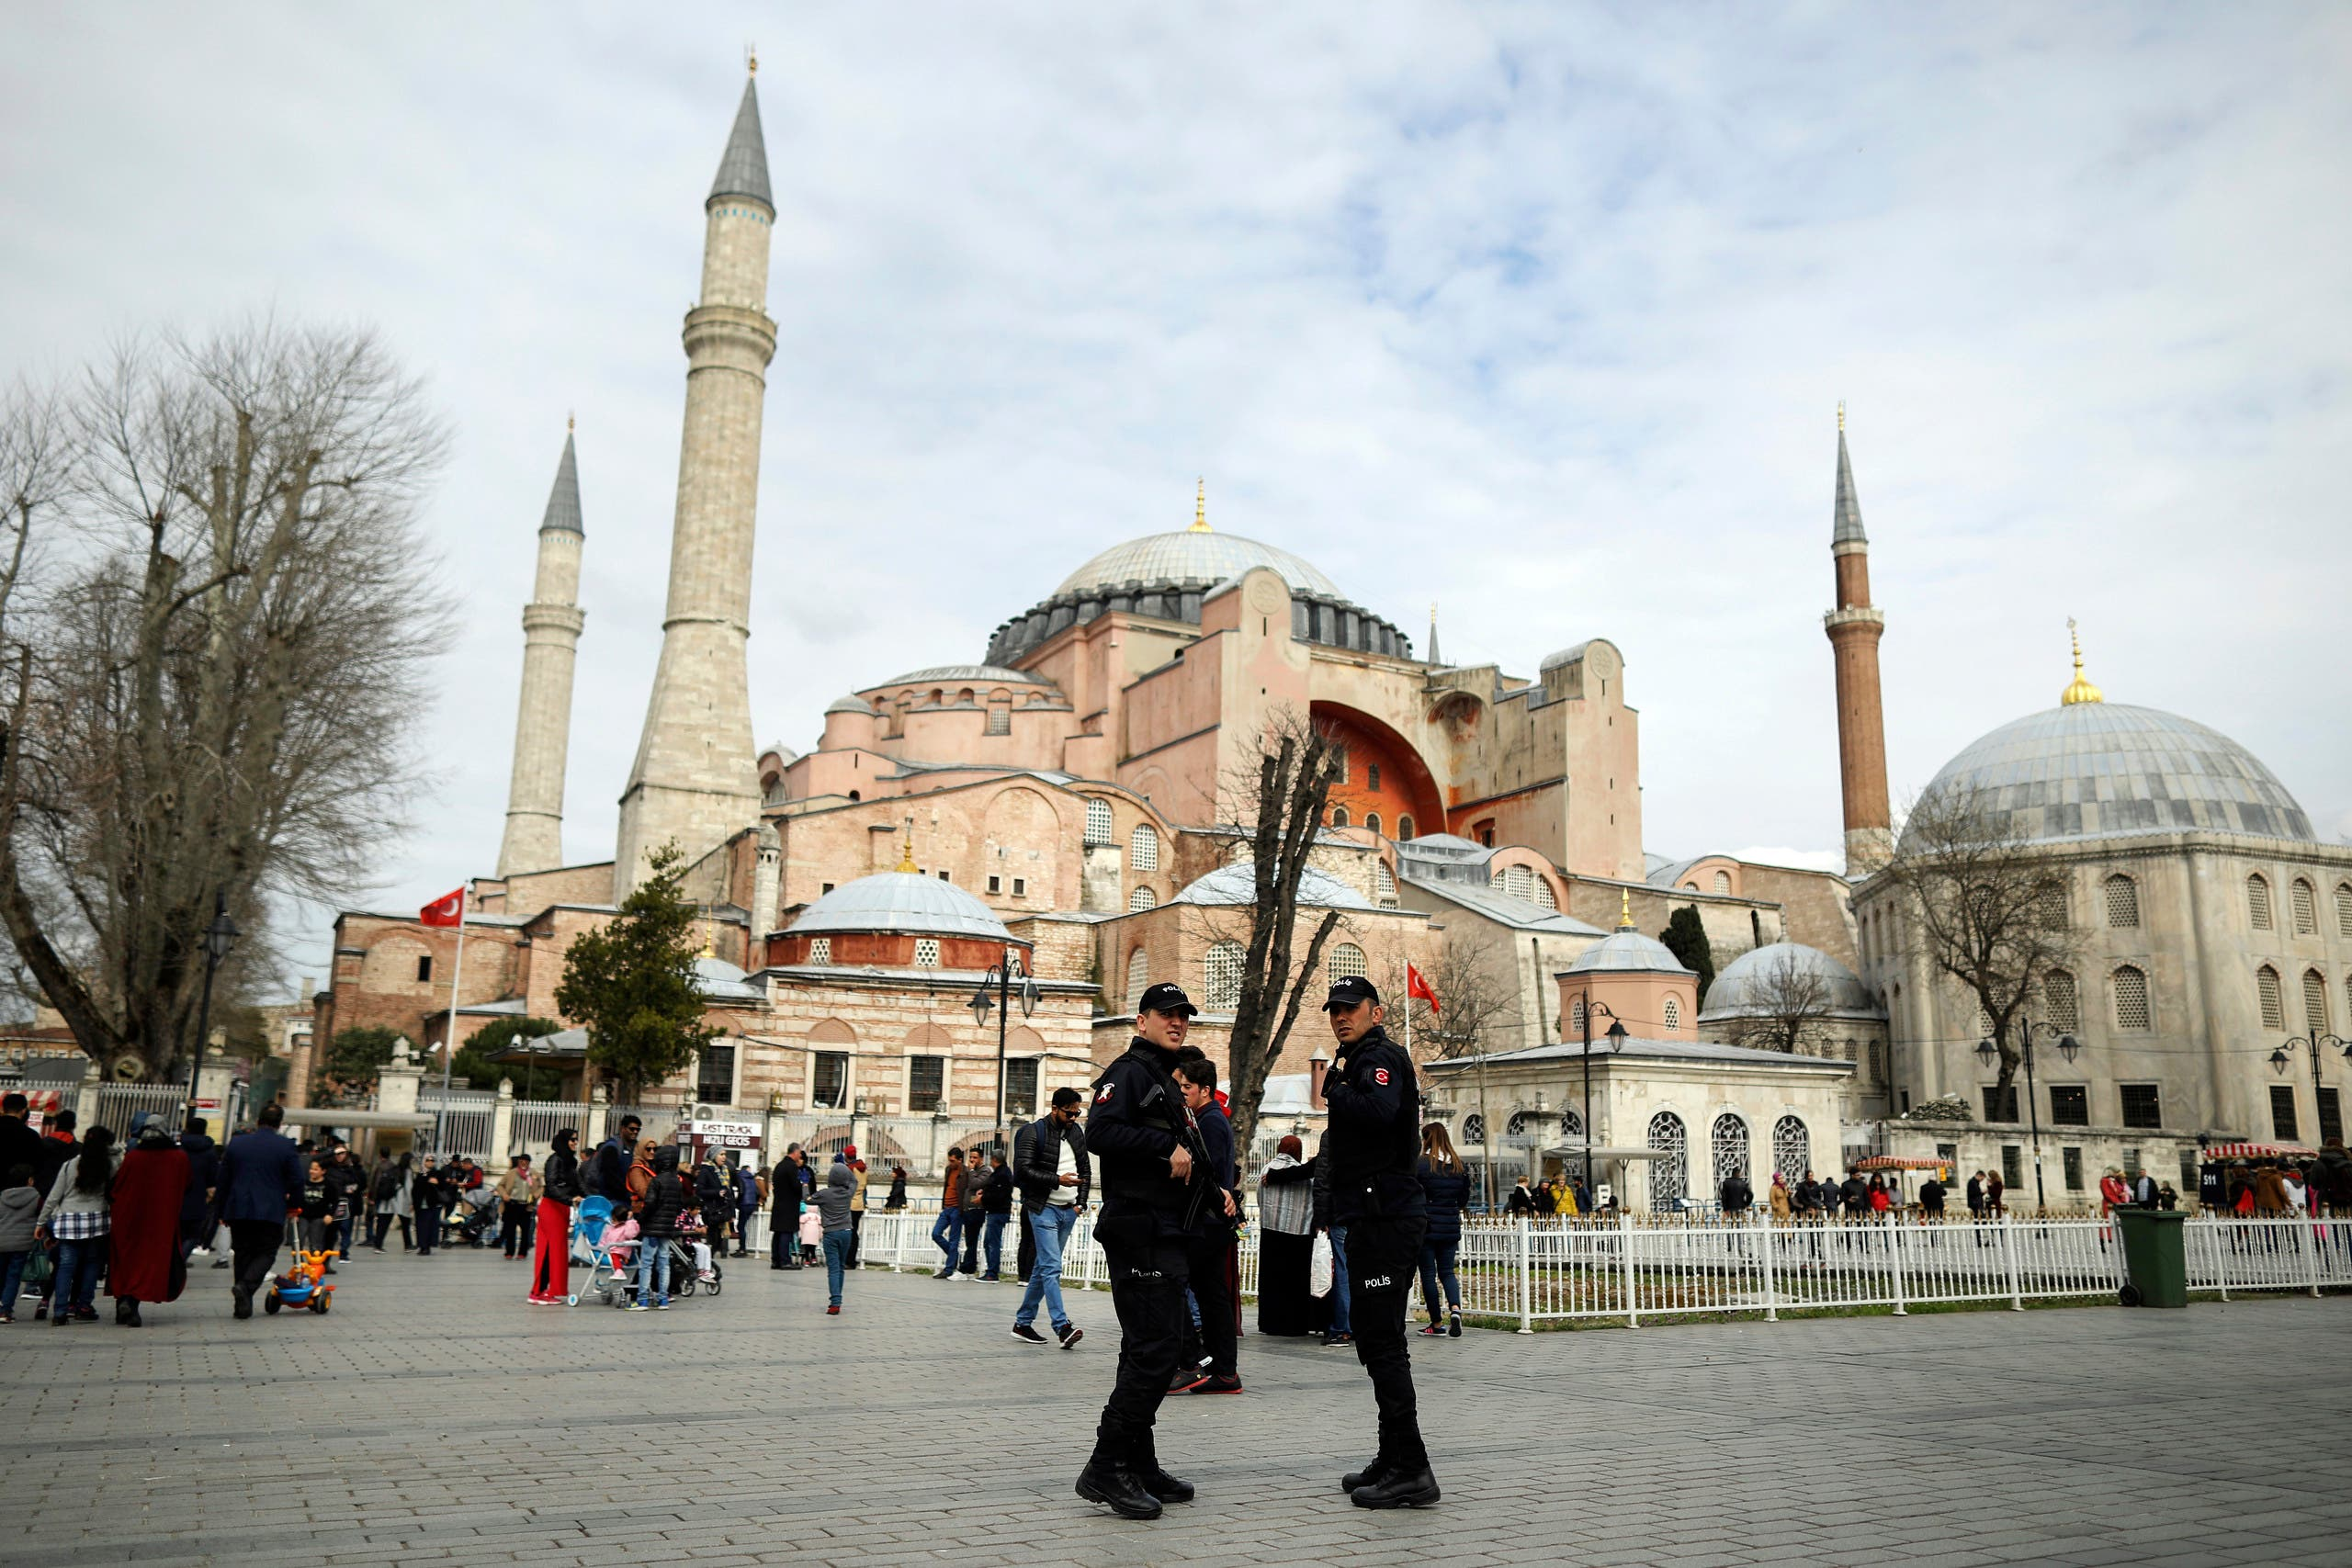 Turkish police secure the plaza in front of he Byzantine-era Hagia Sophia, one of Istanbul's main tourist attractions Hagia Sophia in Istanbul, Turkey, Friday, March 15, 2019. (AP)